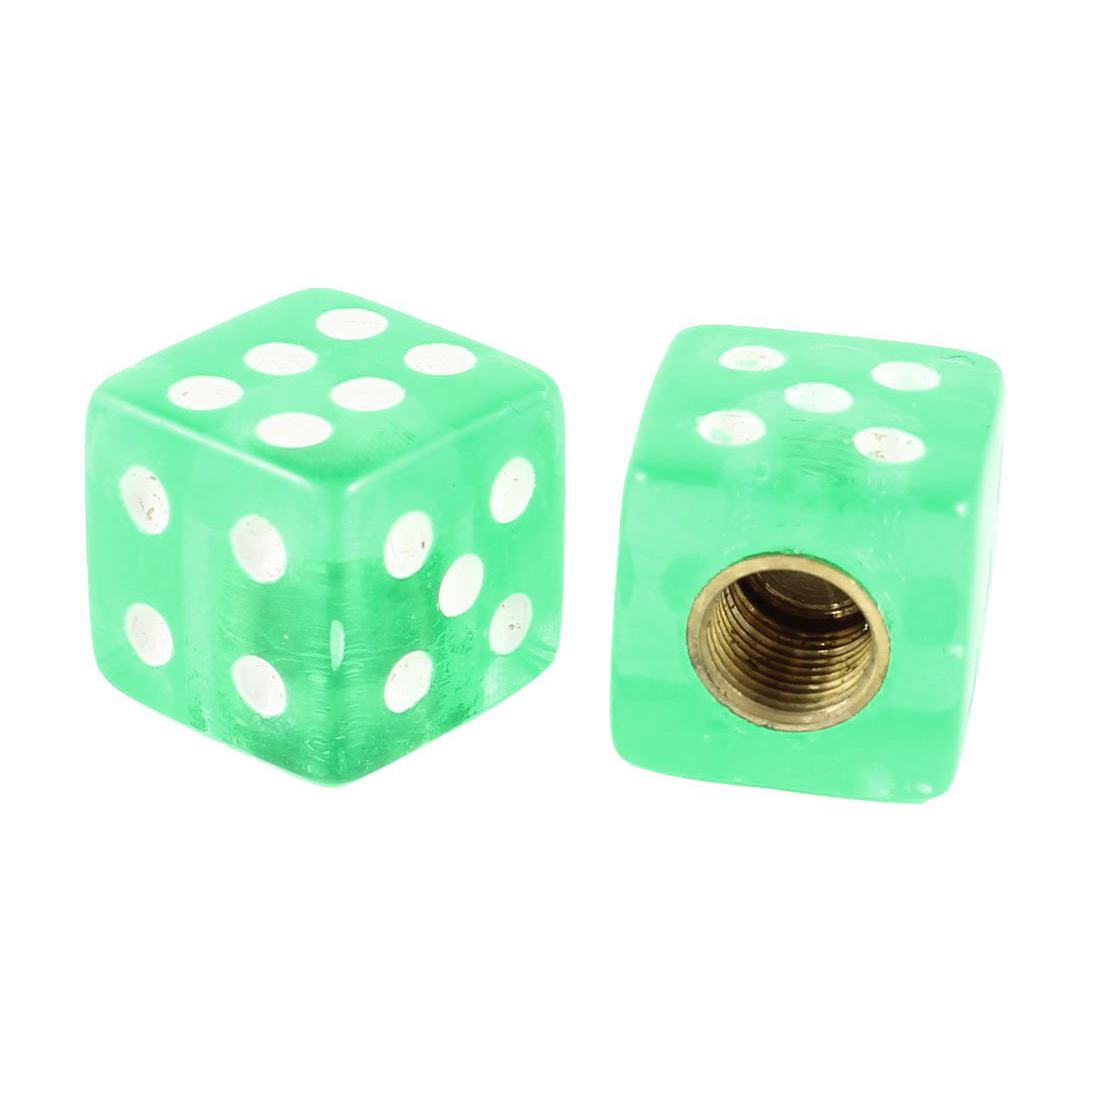 TOYL 4 Pcs Green Cube Dice Shaped Cube Tire Valve Stem Caps For Car